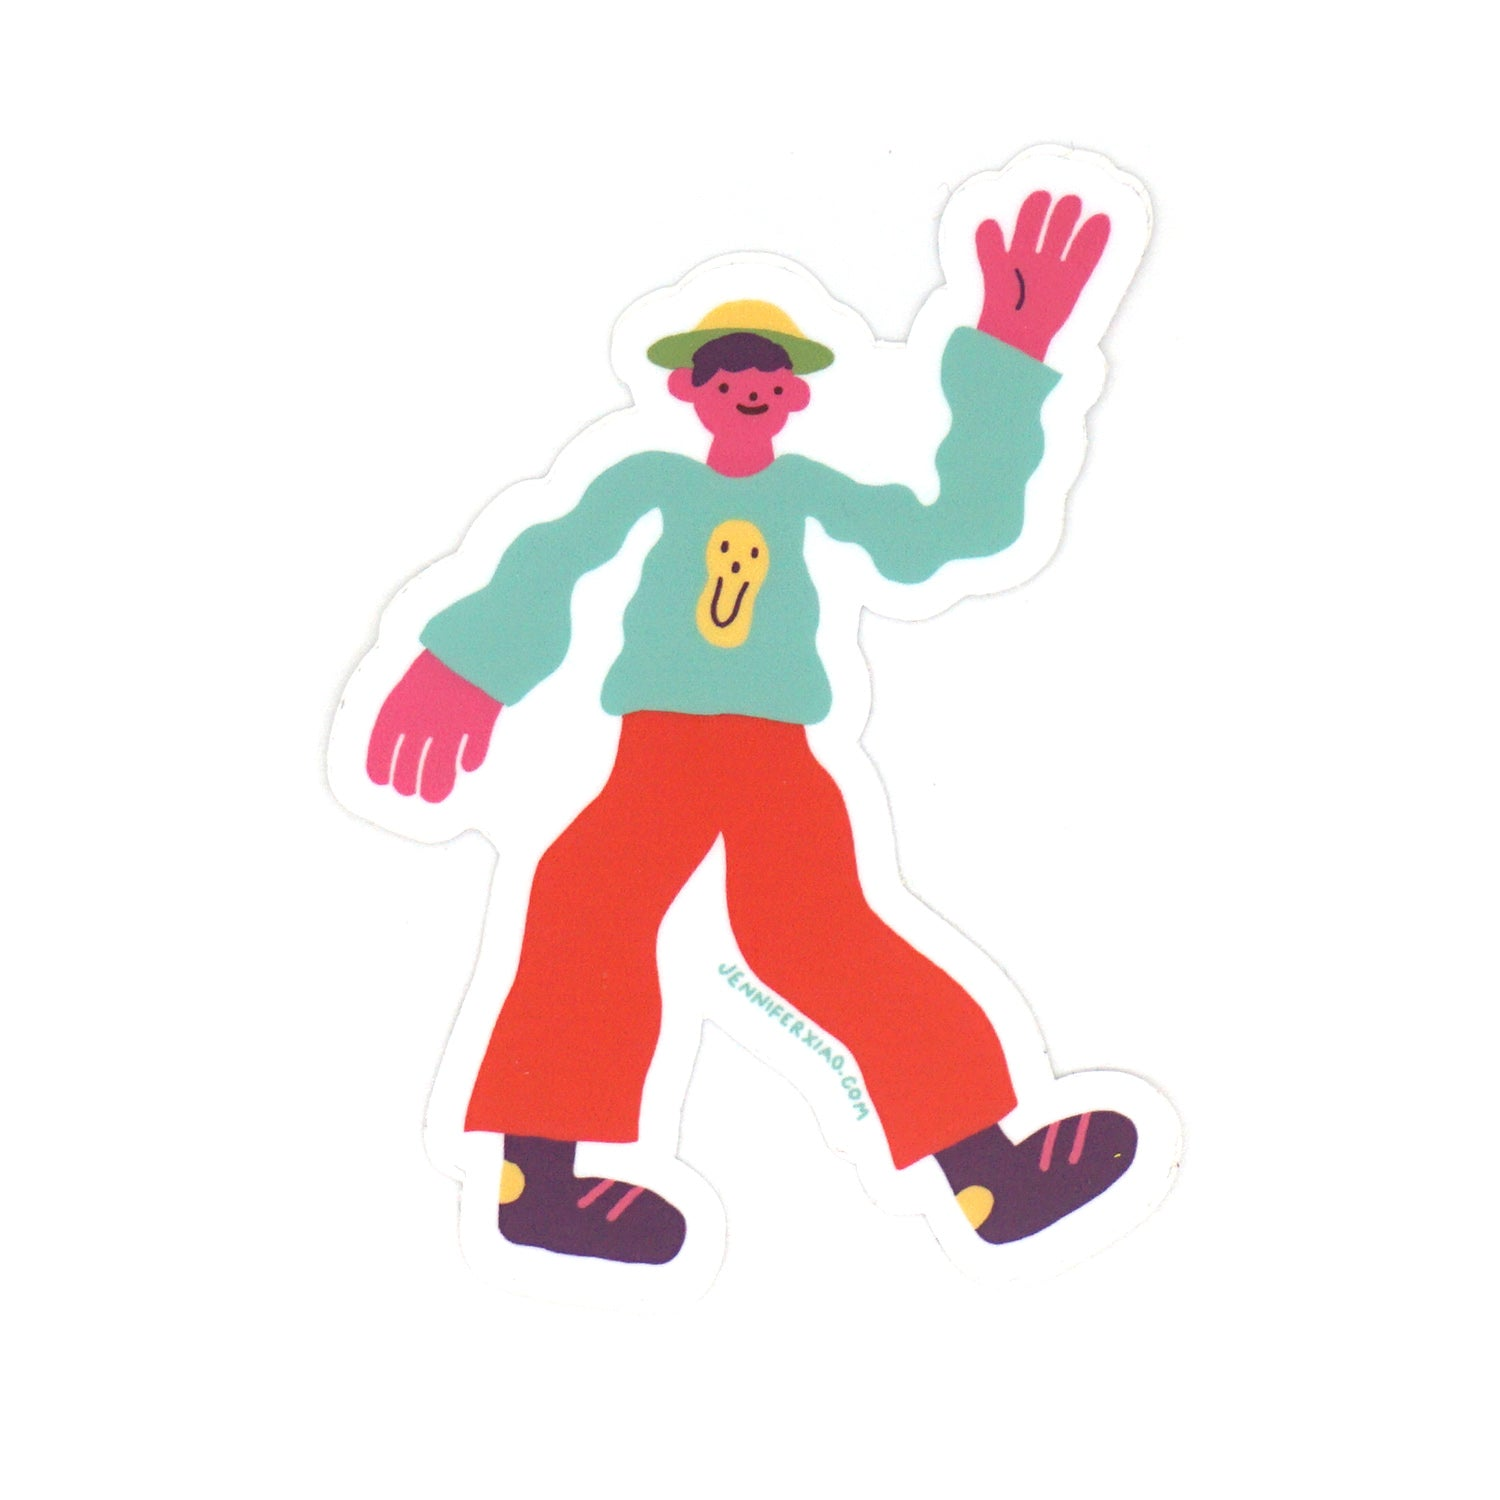 Wavy Man Sticker